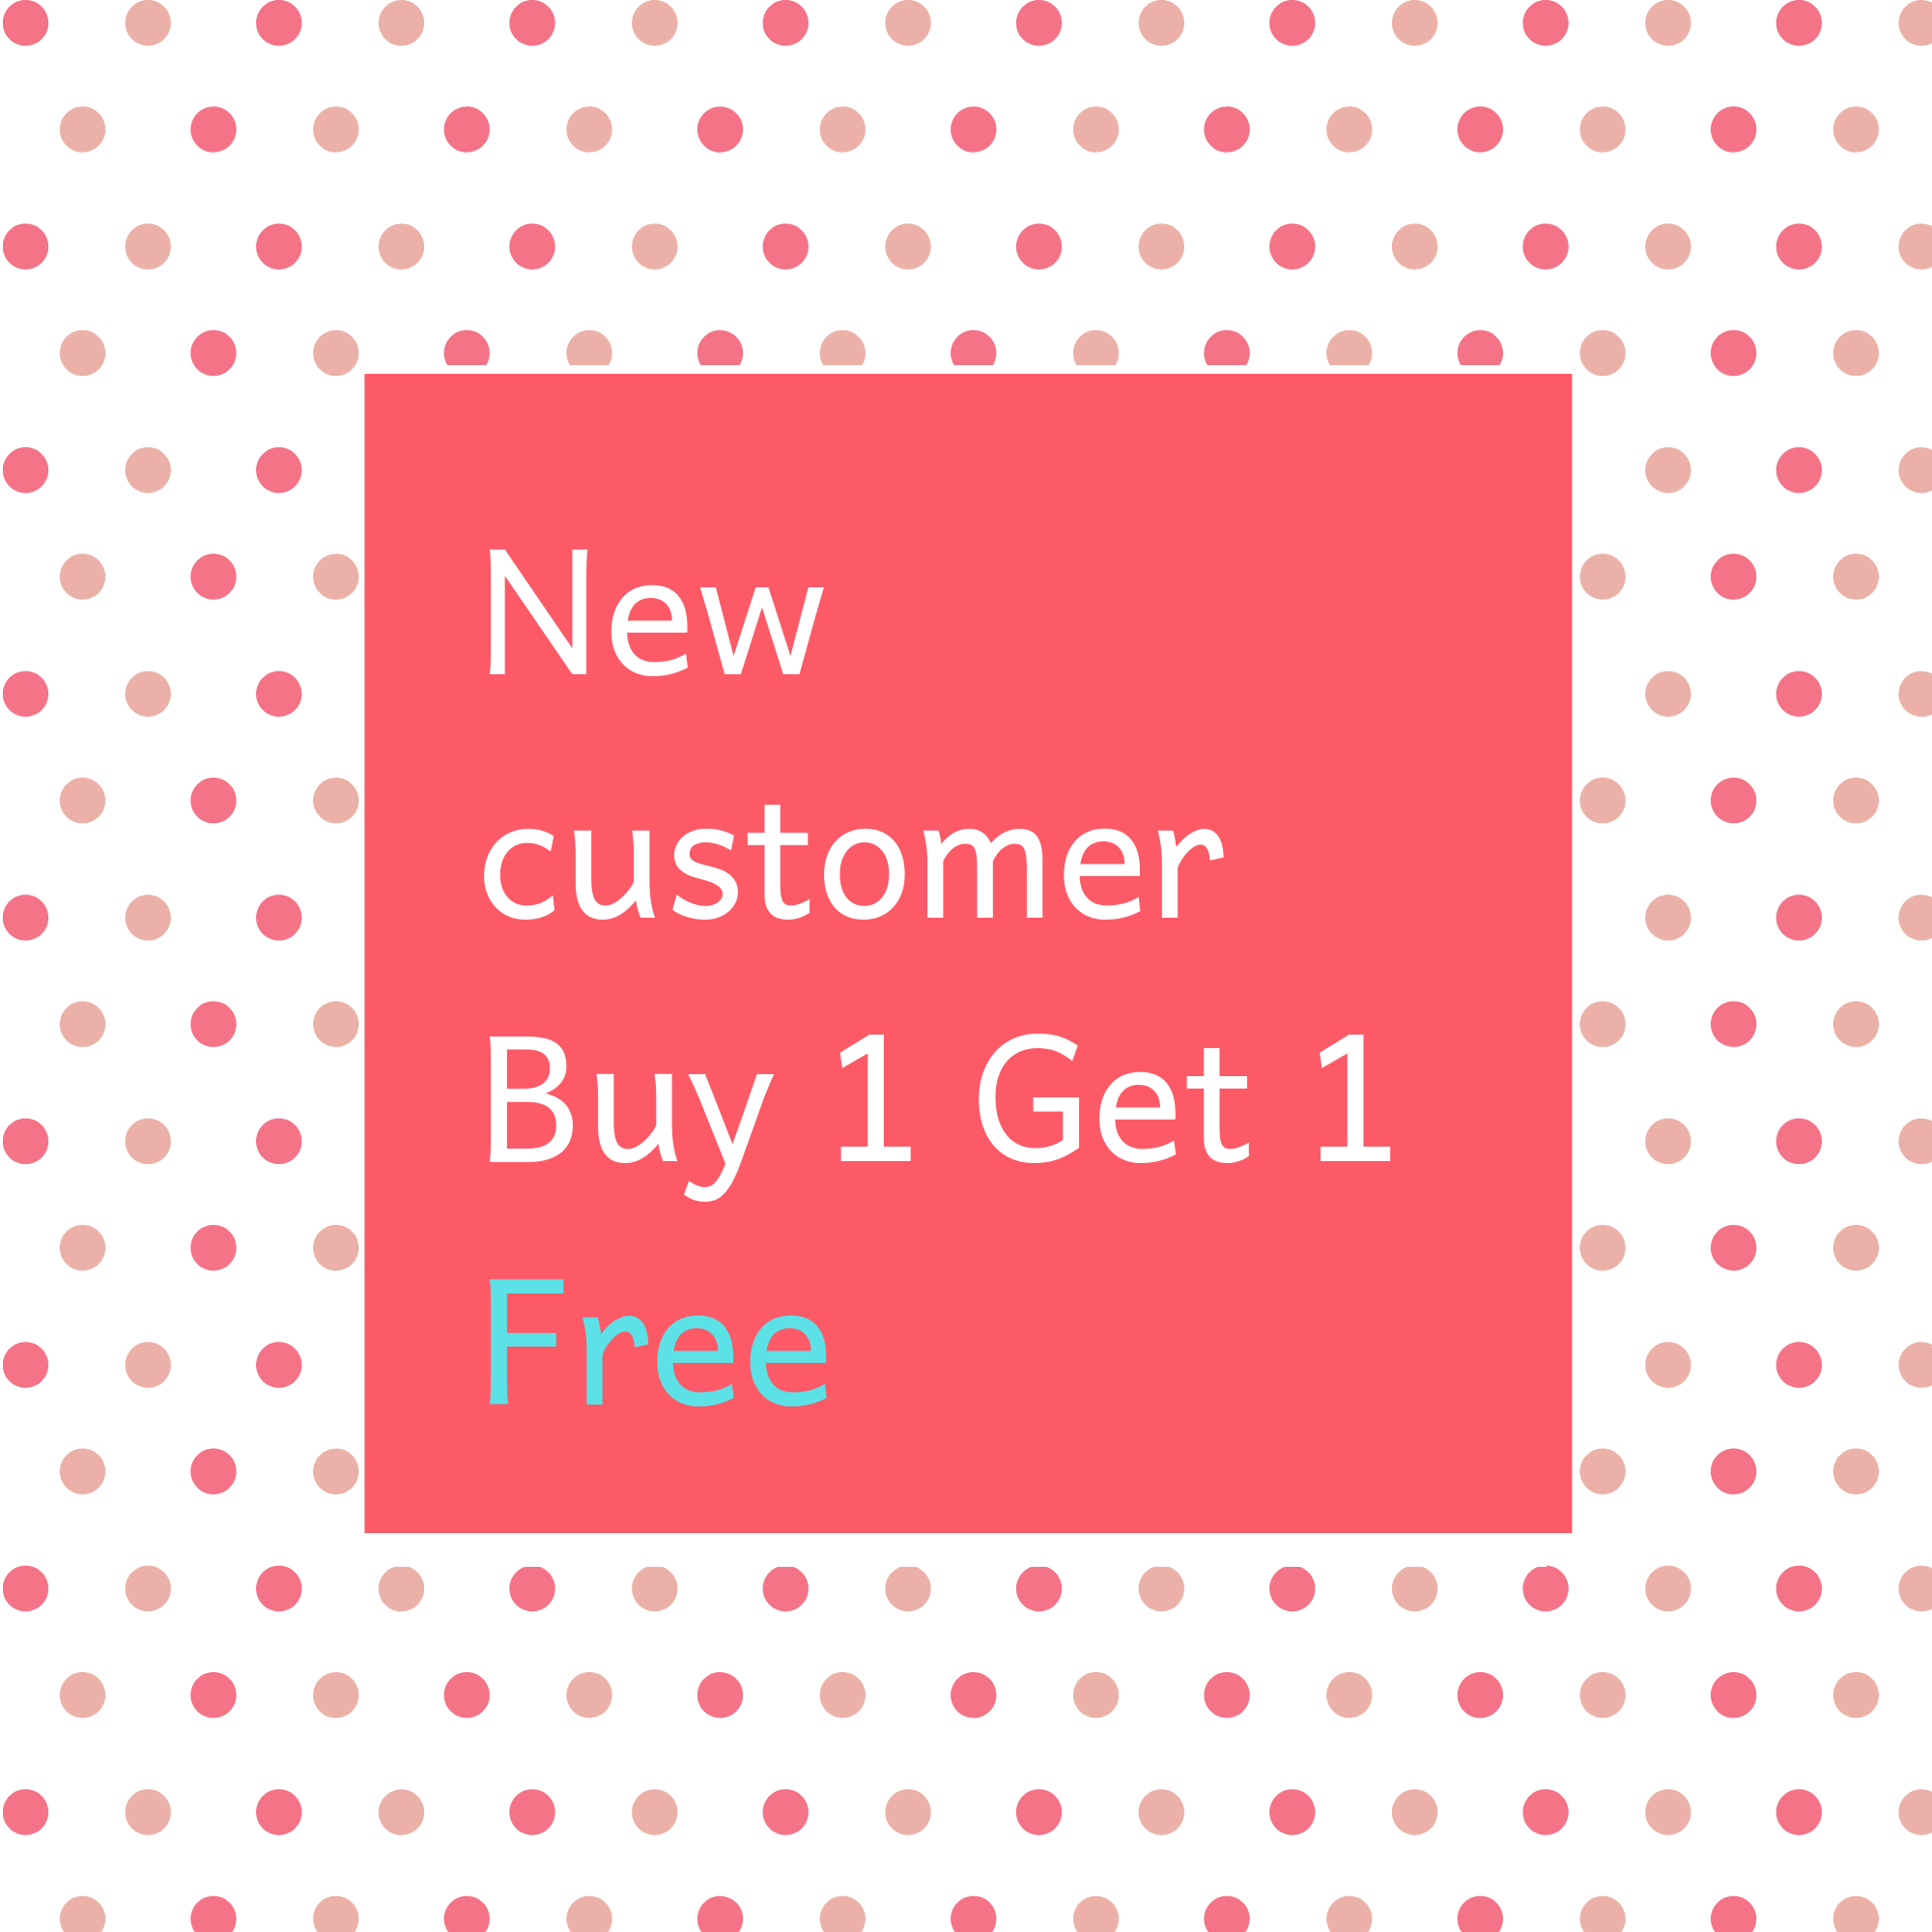 New Customer-Buy 1 Get 1 Free